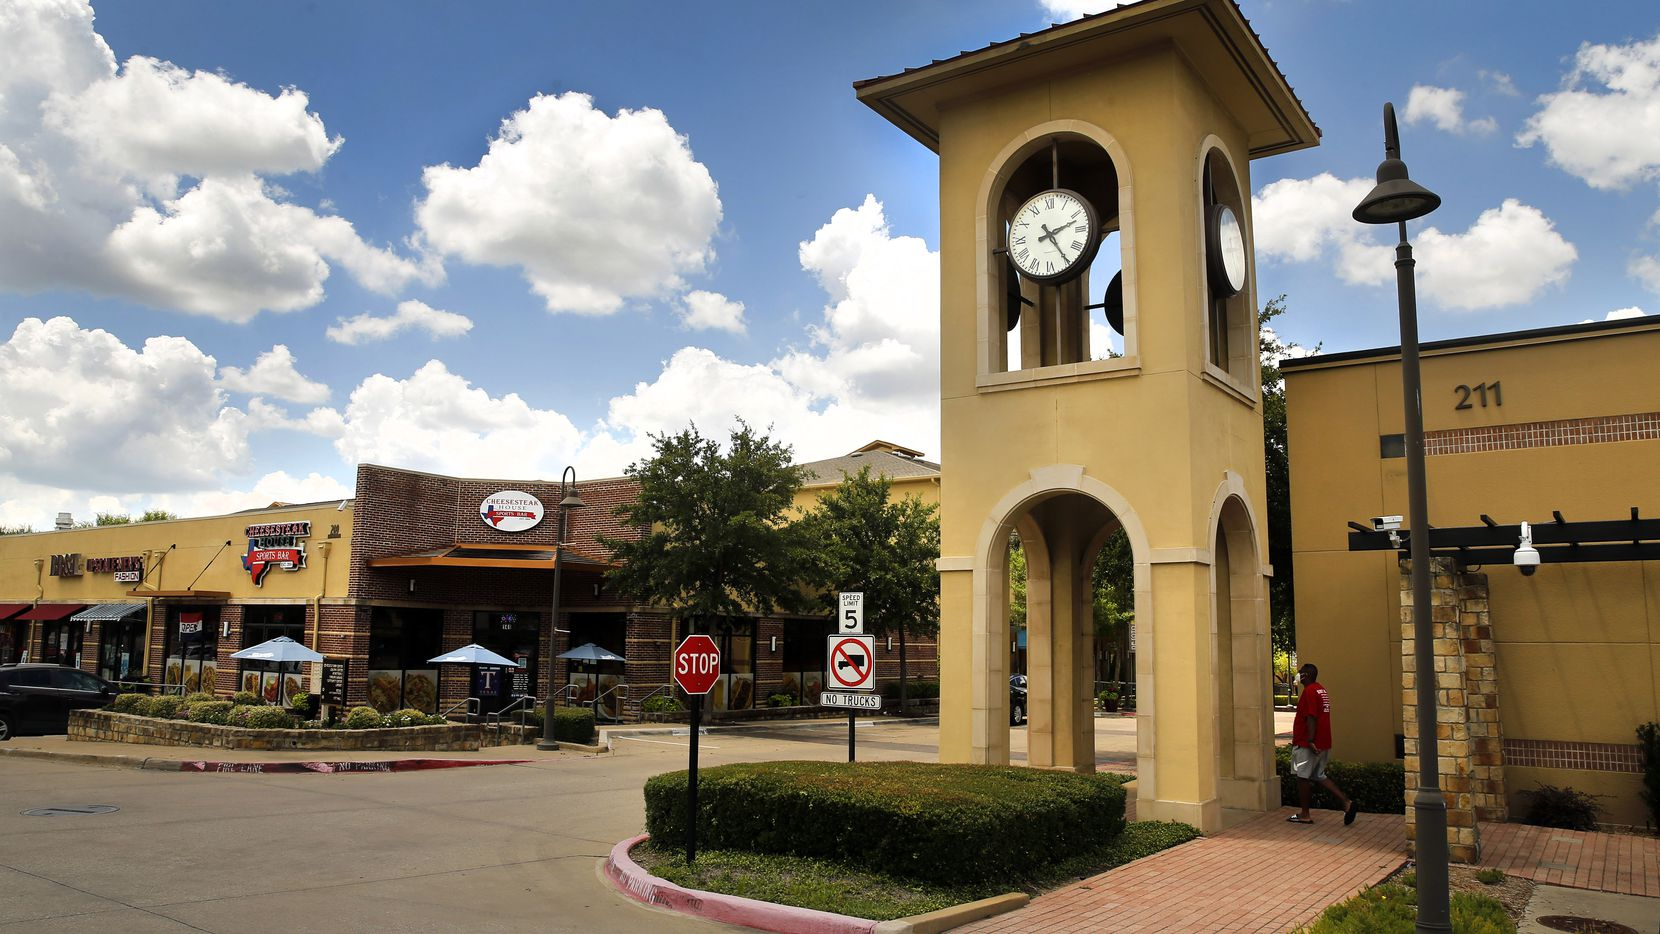 The City of DeSoto's Jim Baugh Government Center (right) is pictured in DeSoto Town Center in DeSoto, Texas, Wednesday, June 24, 2020.